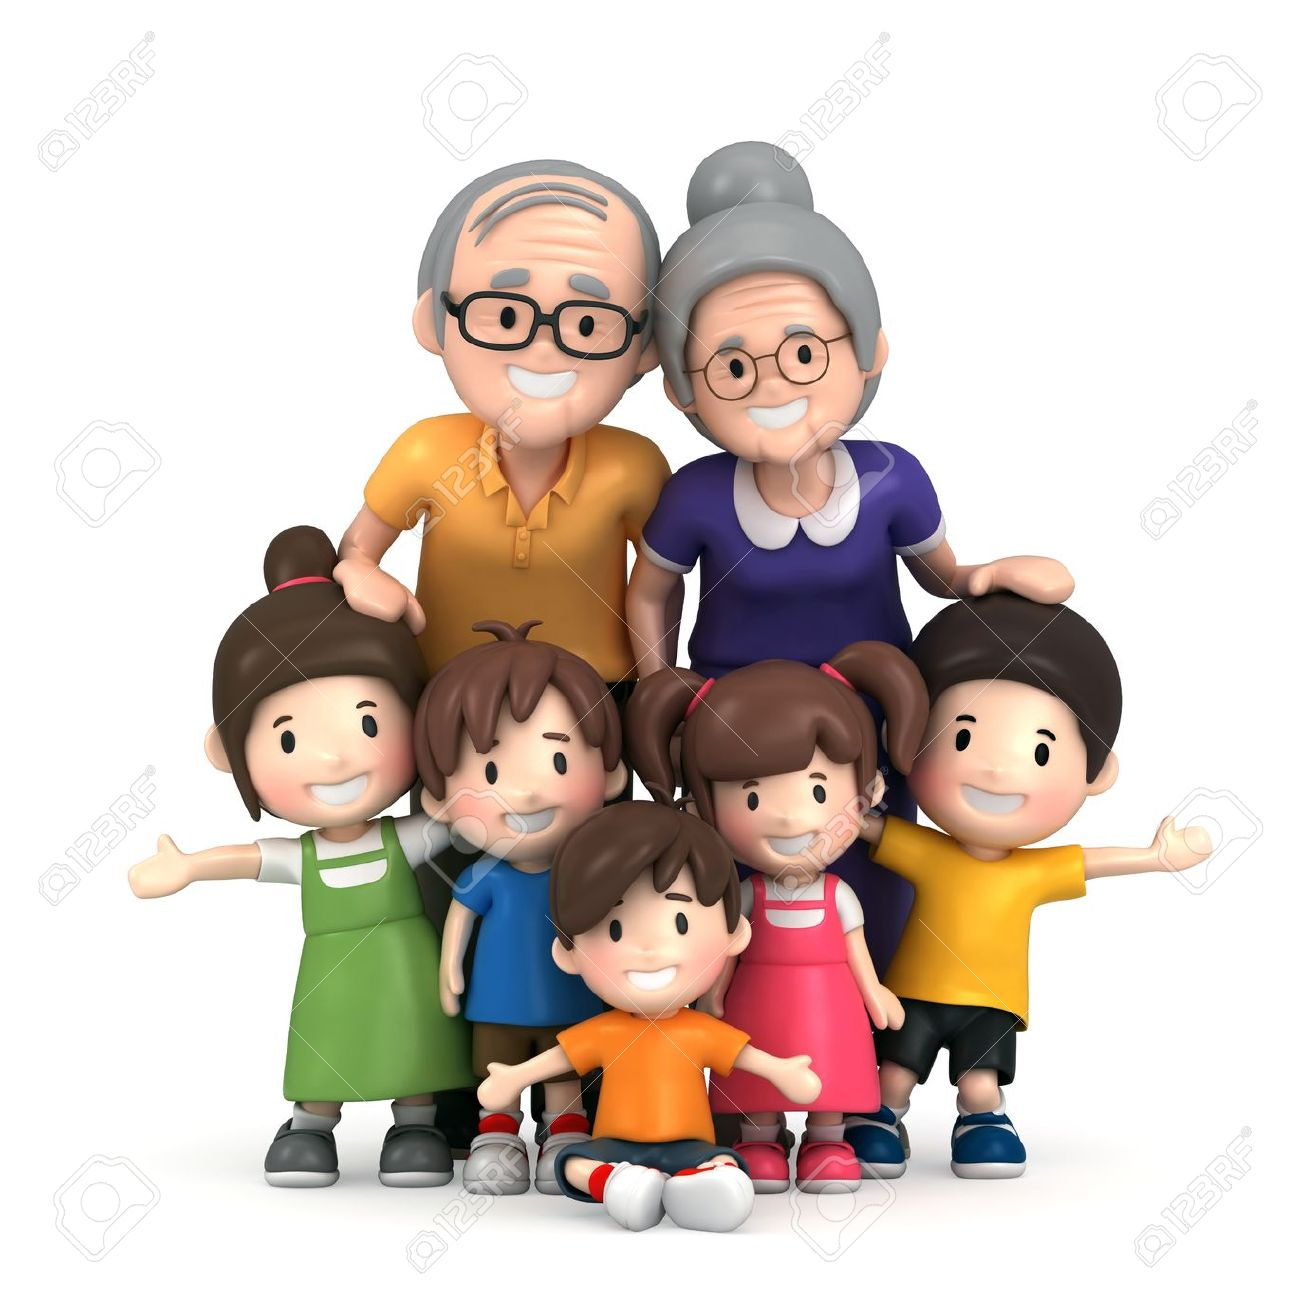 Clipart Of Grandparents With Grandchildren.